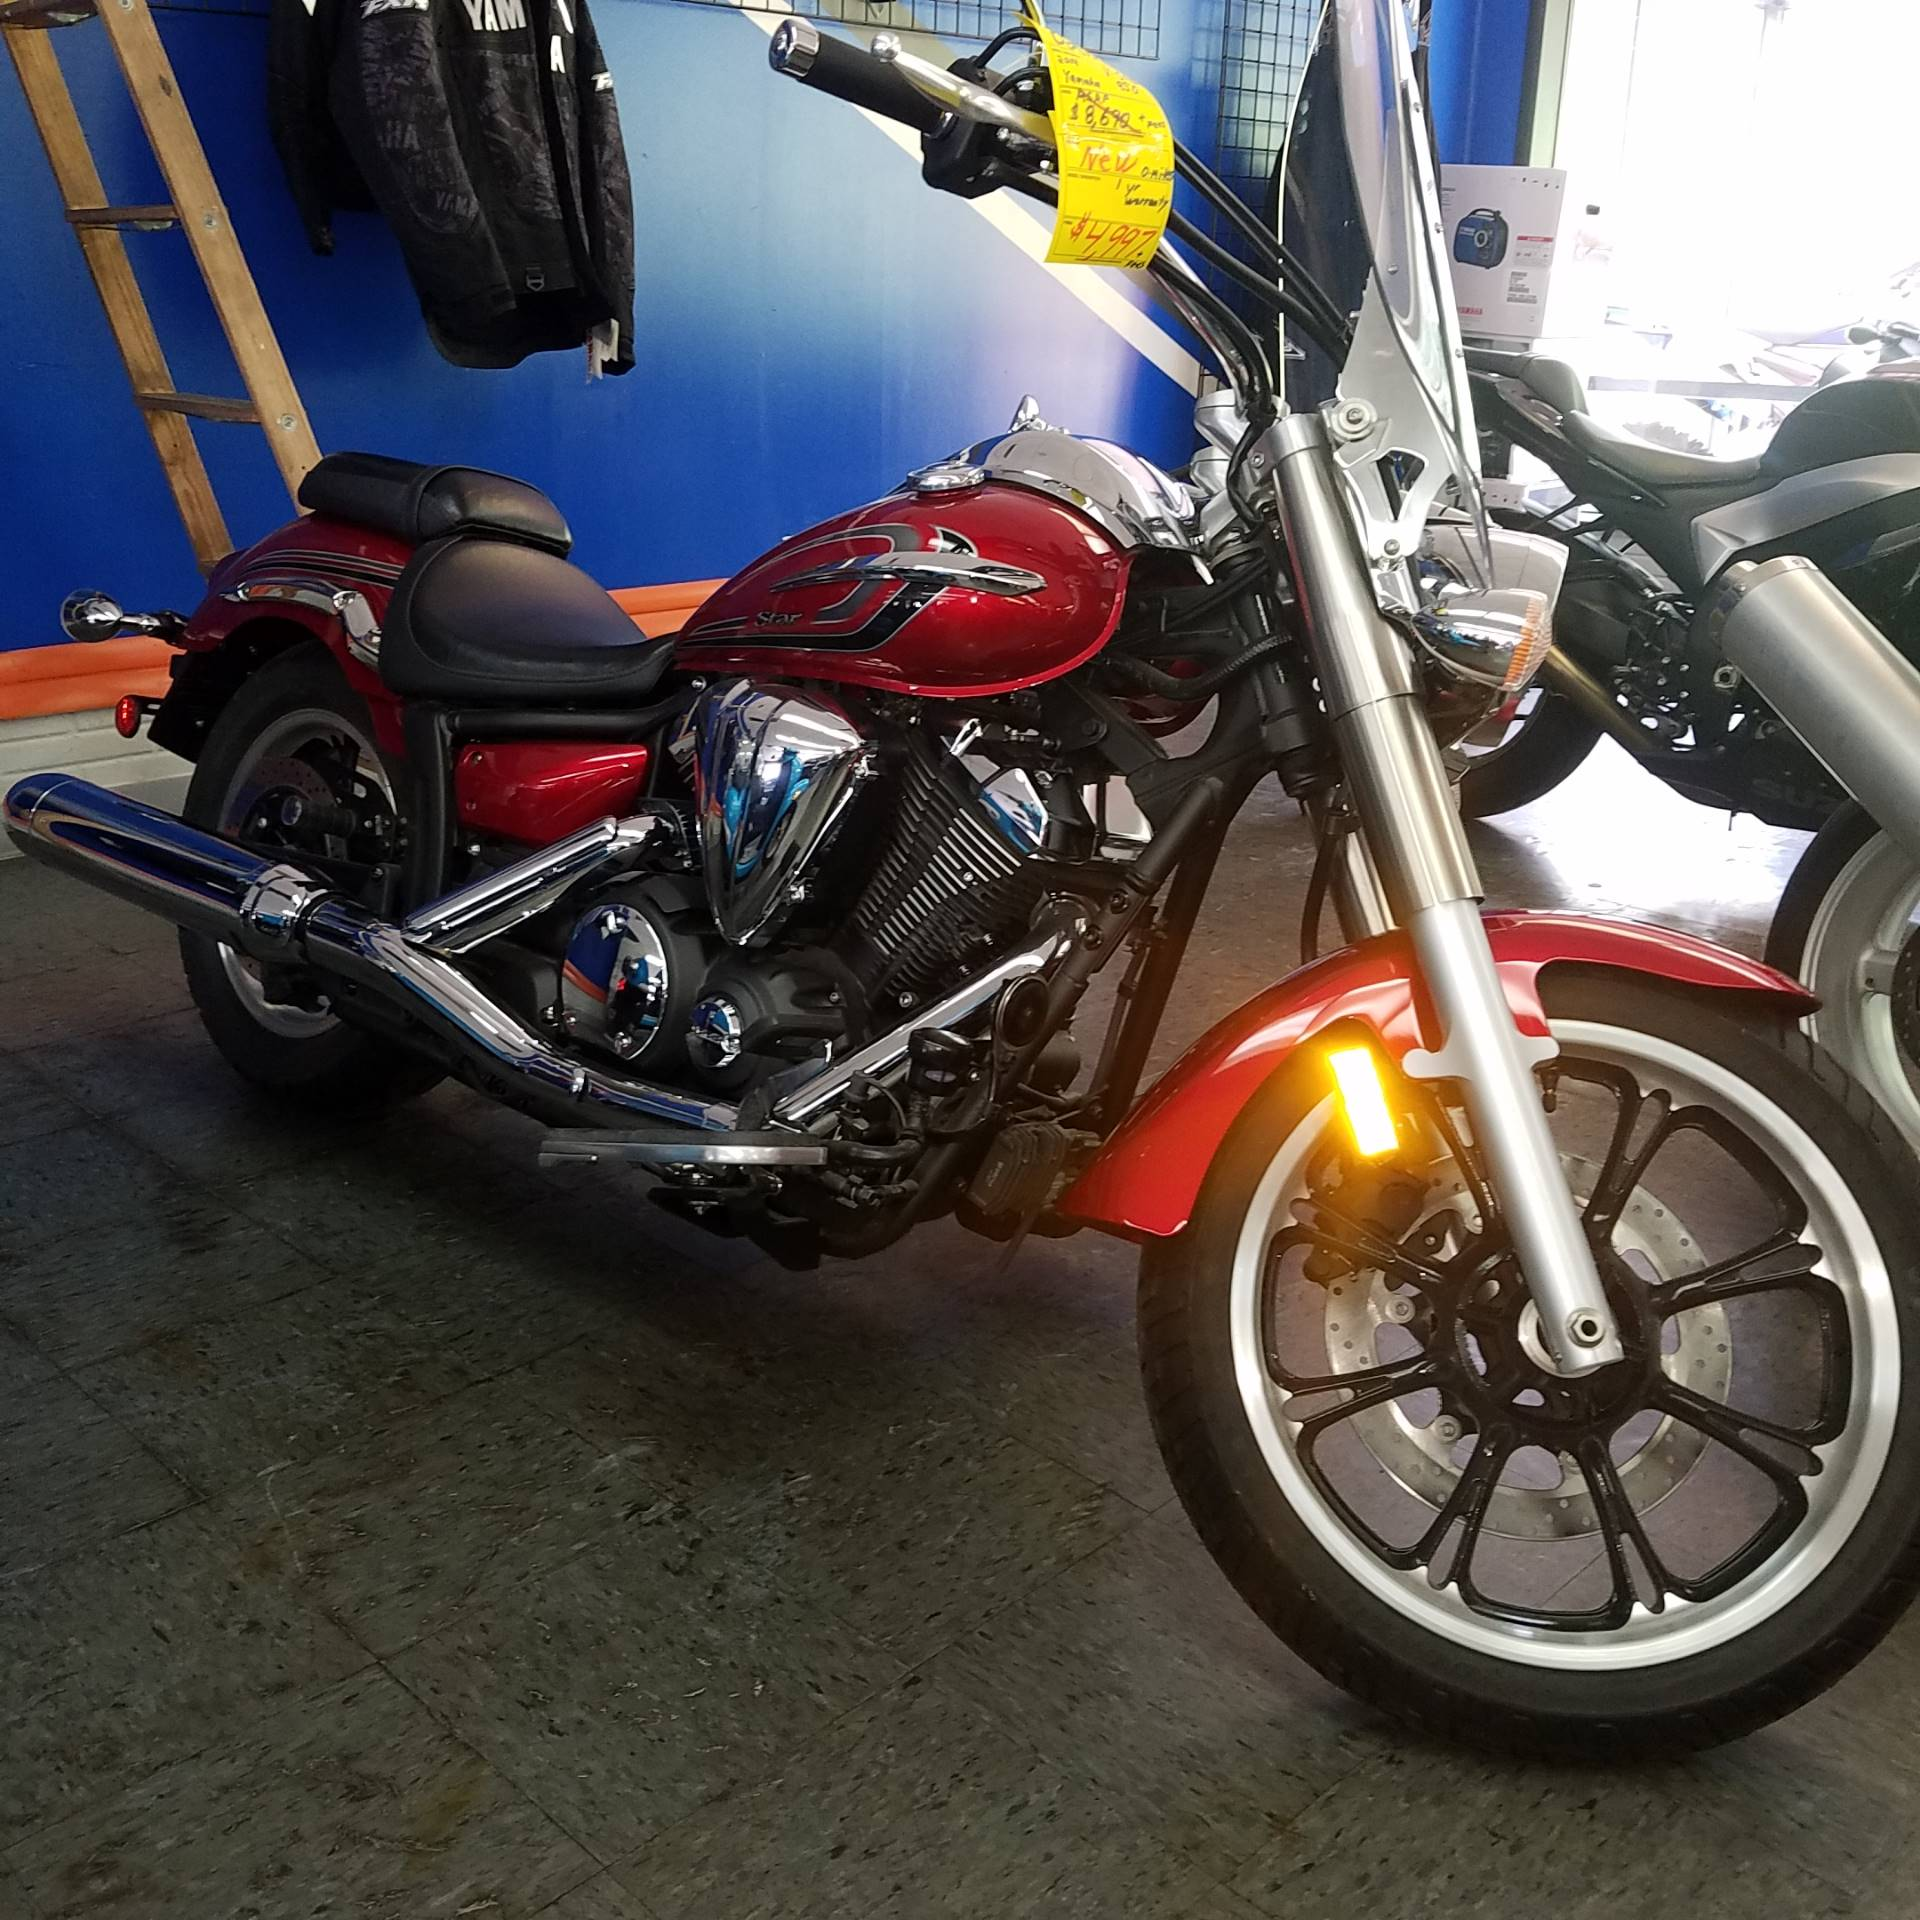 2014 Yamaha V Star 950 in Moline, Illinois - Photo 2